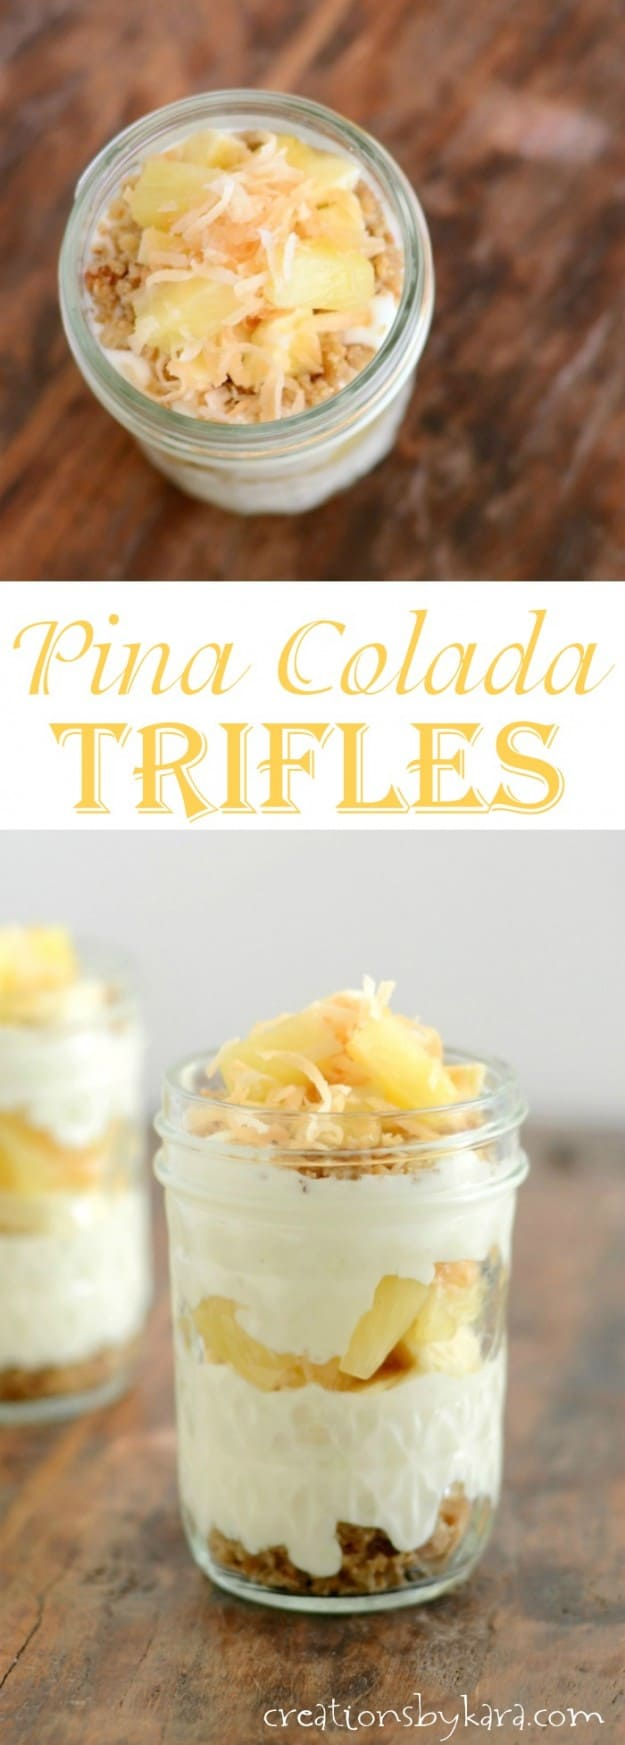 Whisk yourself away to a tropical paradise with these Pina Colada Trifles!